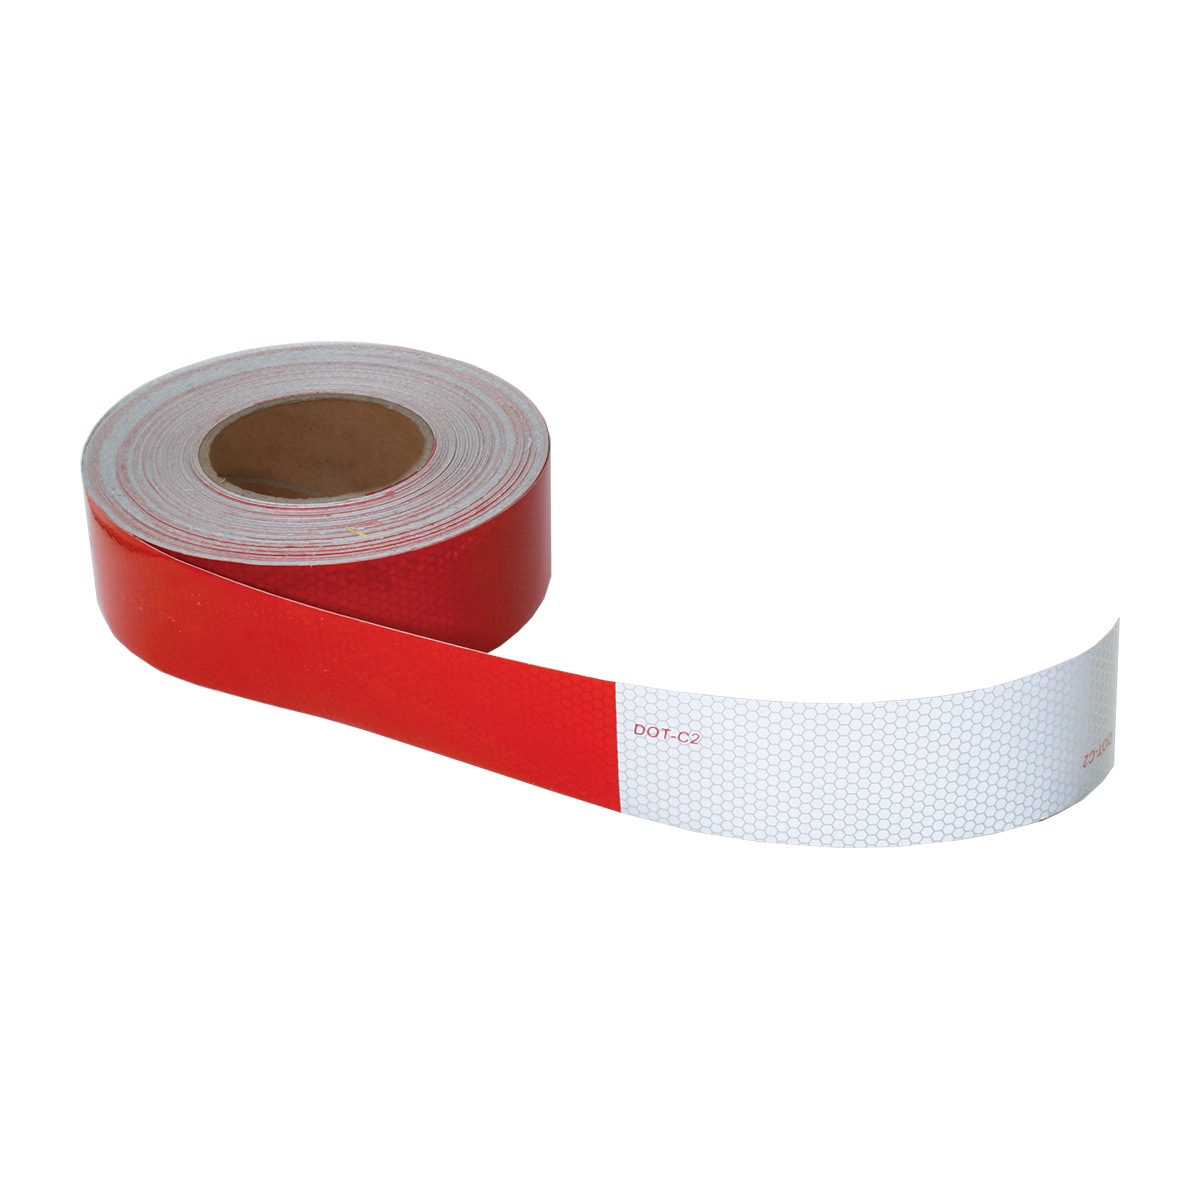 DOT-C2 Conspicuity Tape in Red & White 150' Roll